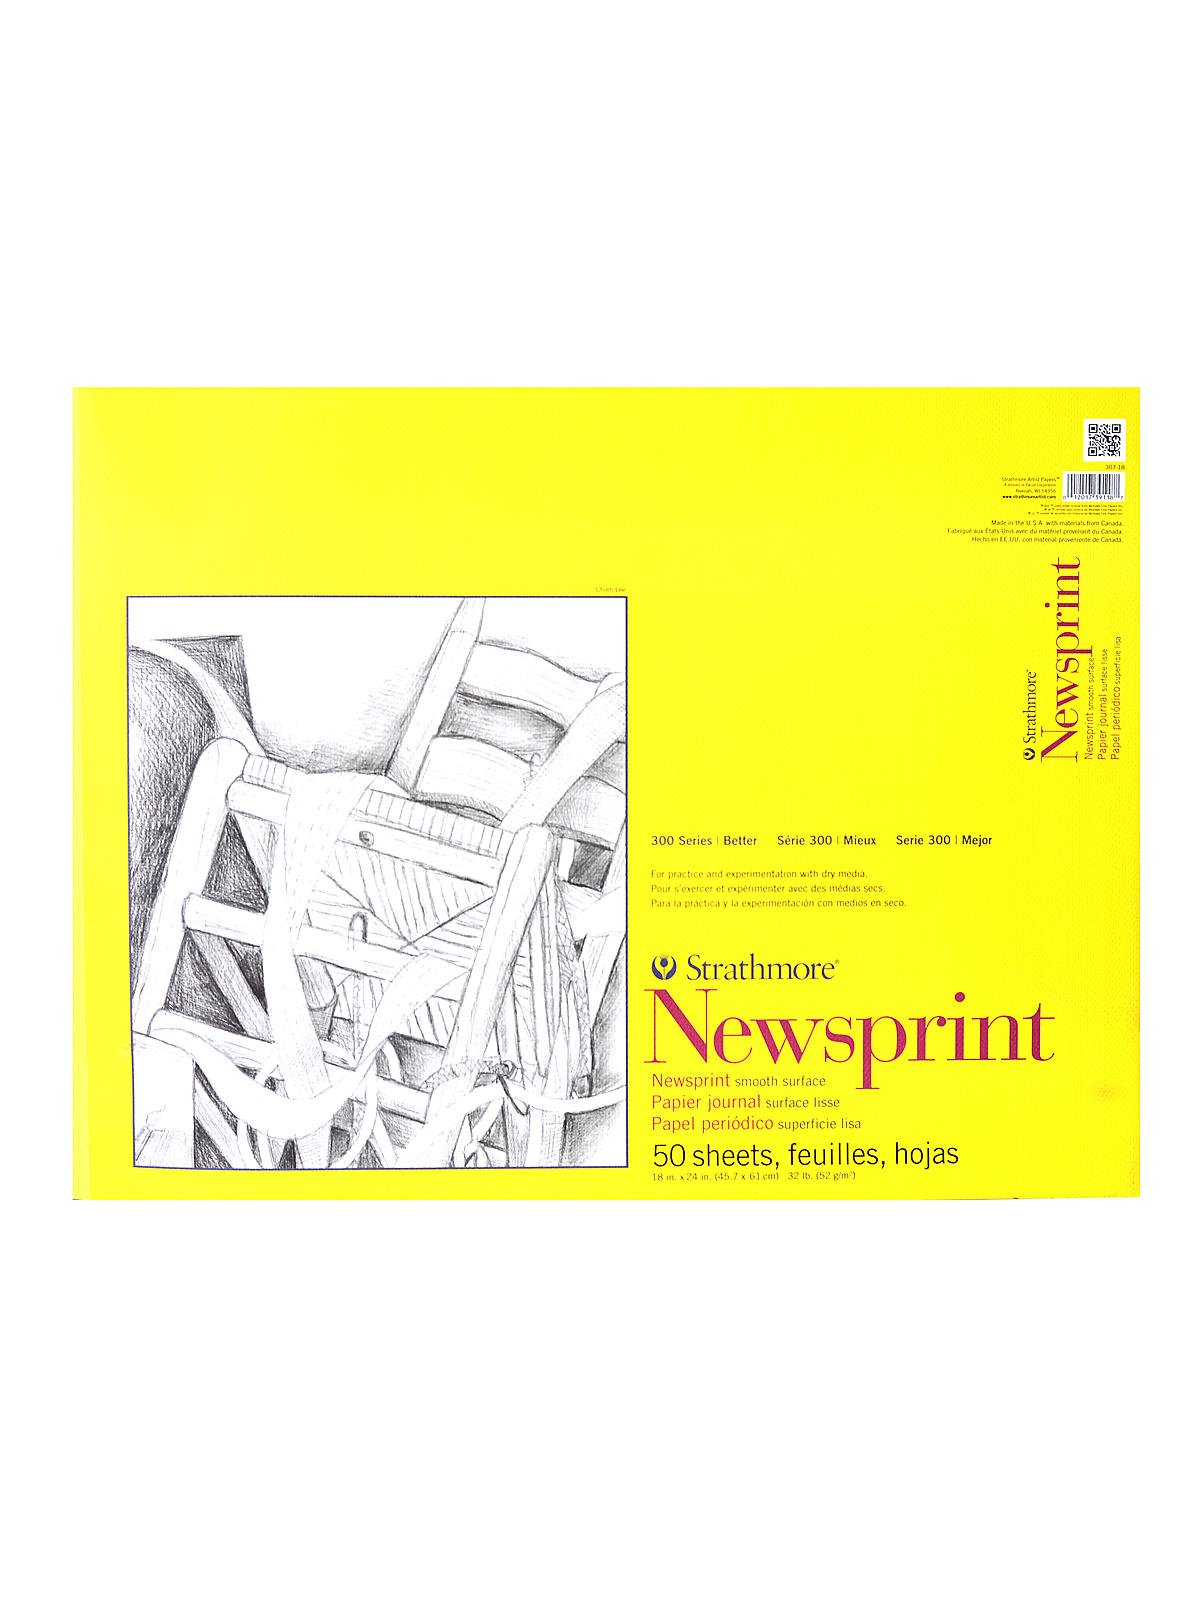 Strathmore 300 series newsprint paper pads misterart 300 series newsprint paper pads smooth 50 sheets 18 in x 24 in sciox Gallery